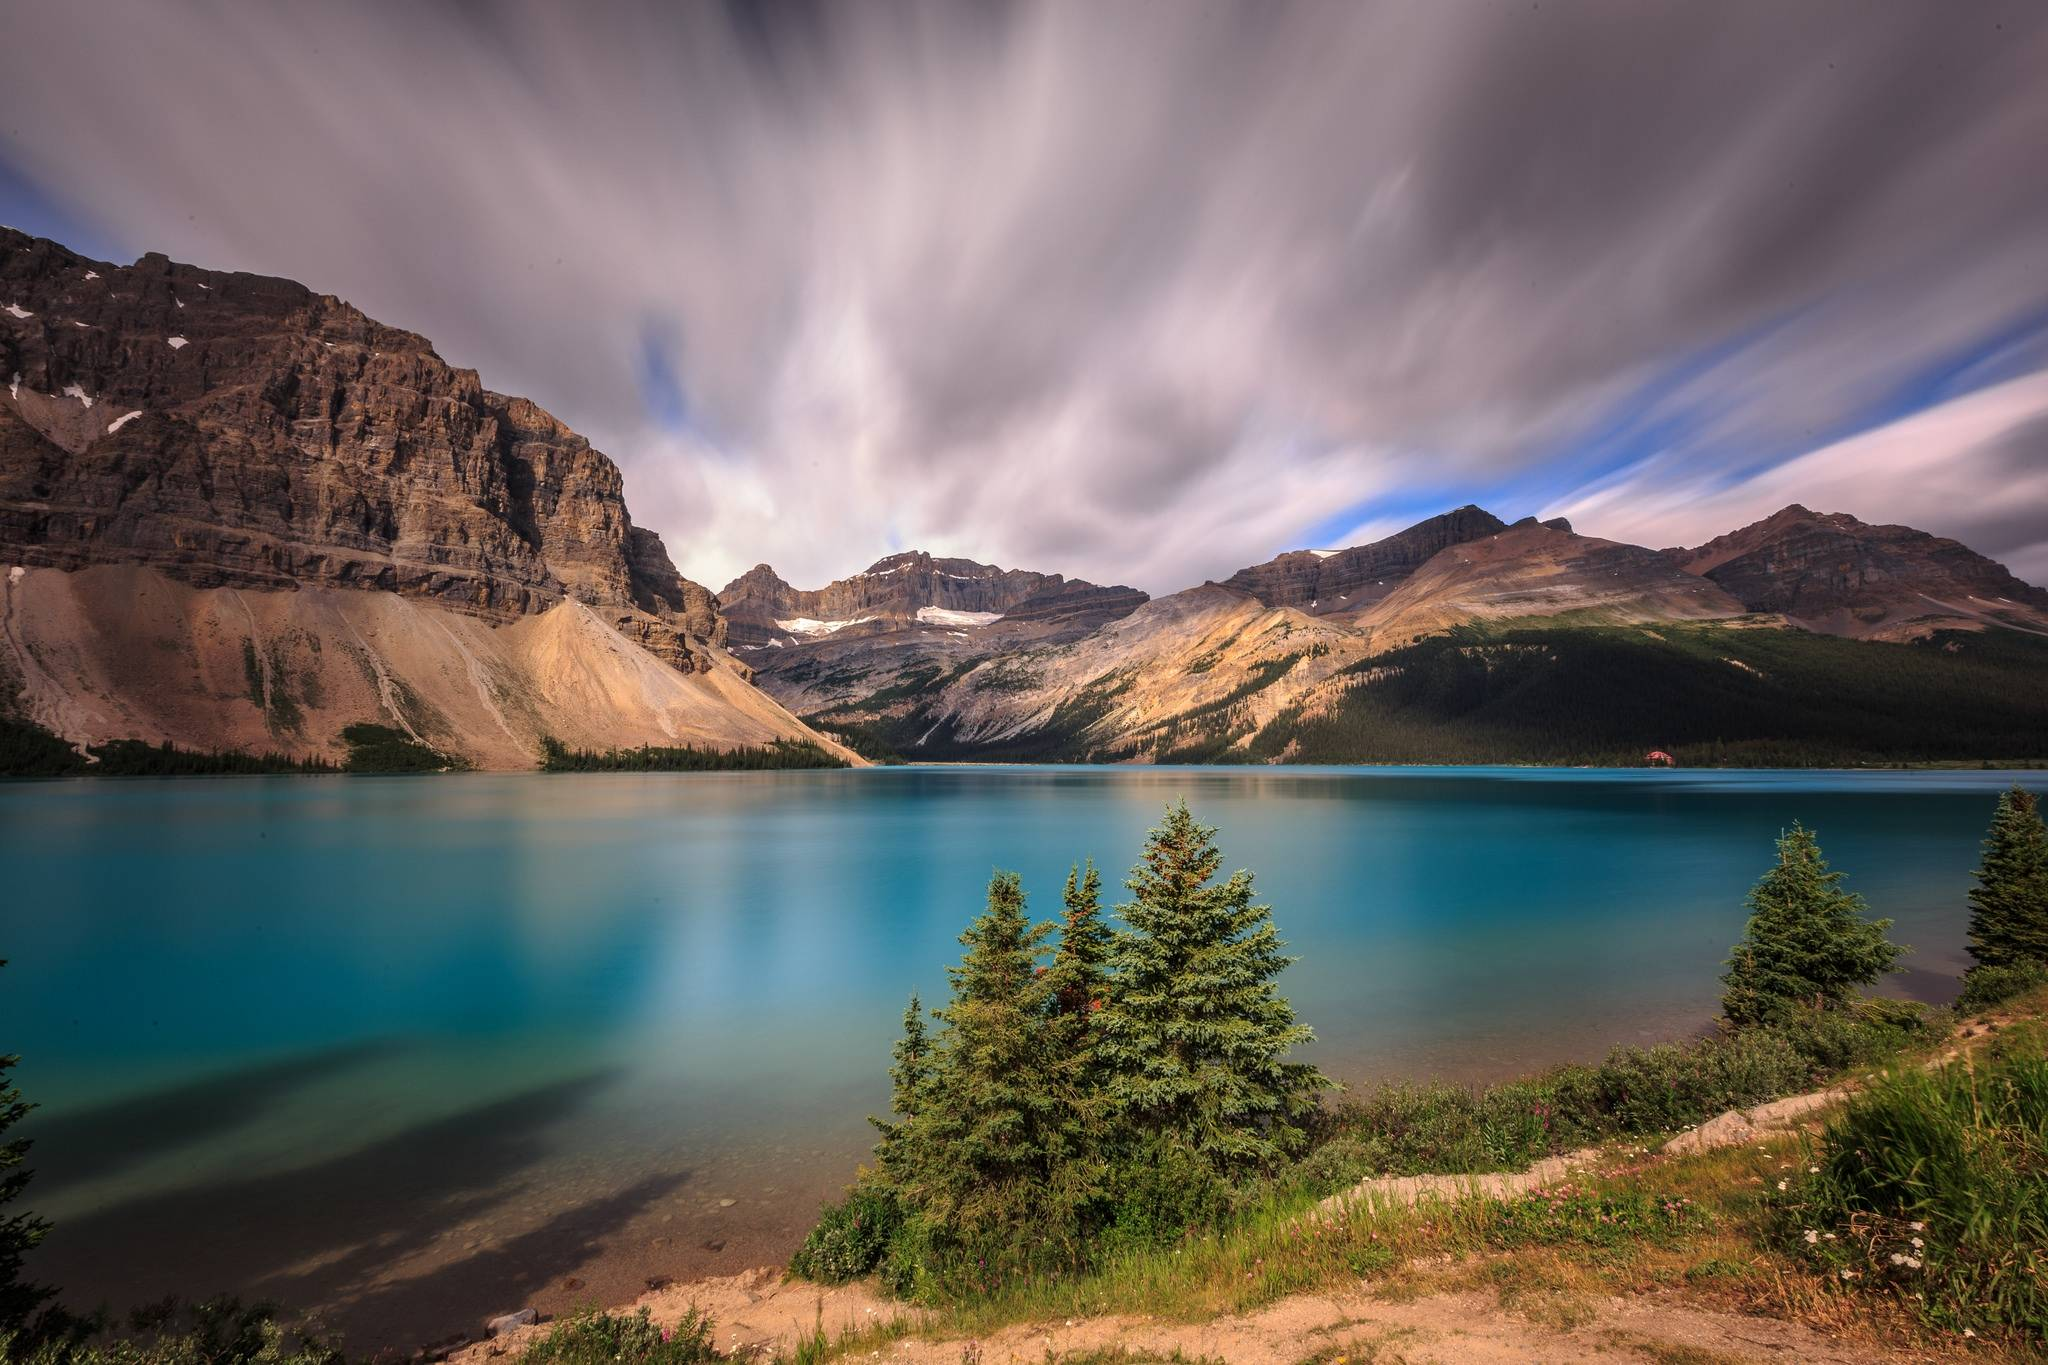 Alberta, Banff National Park, Bow Lake